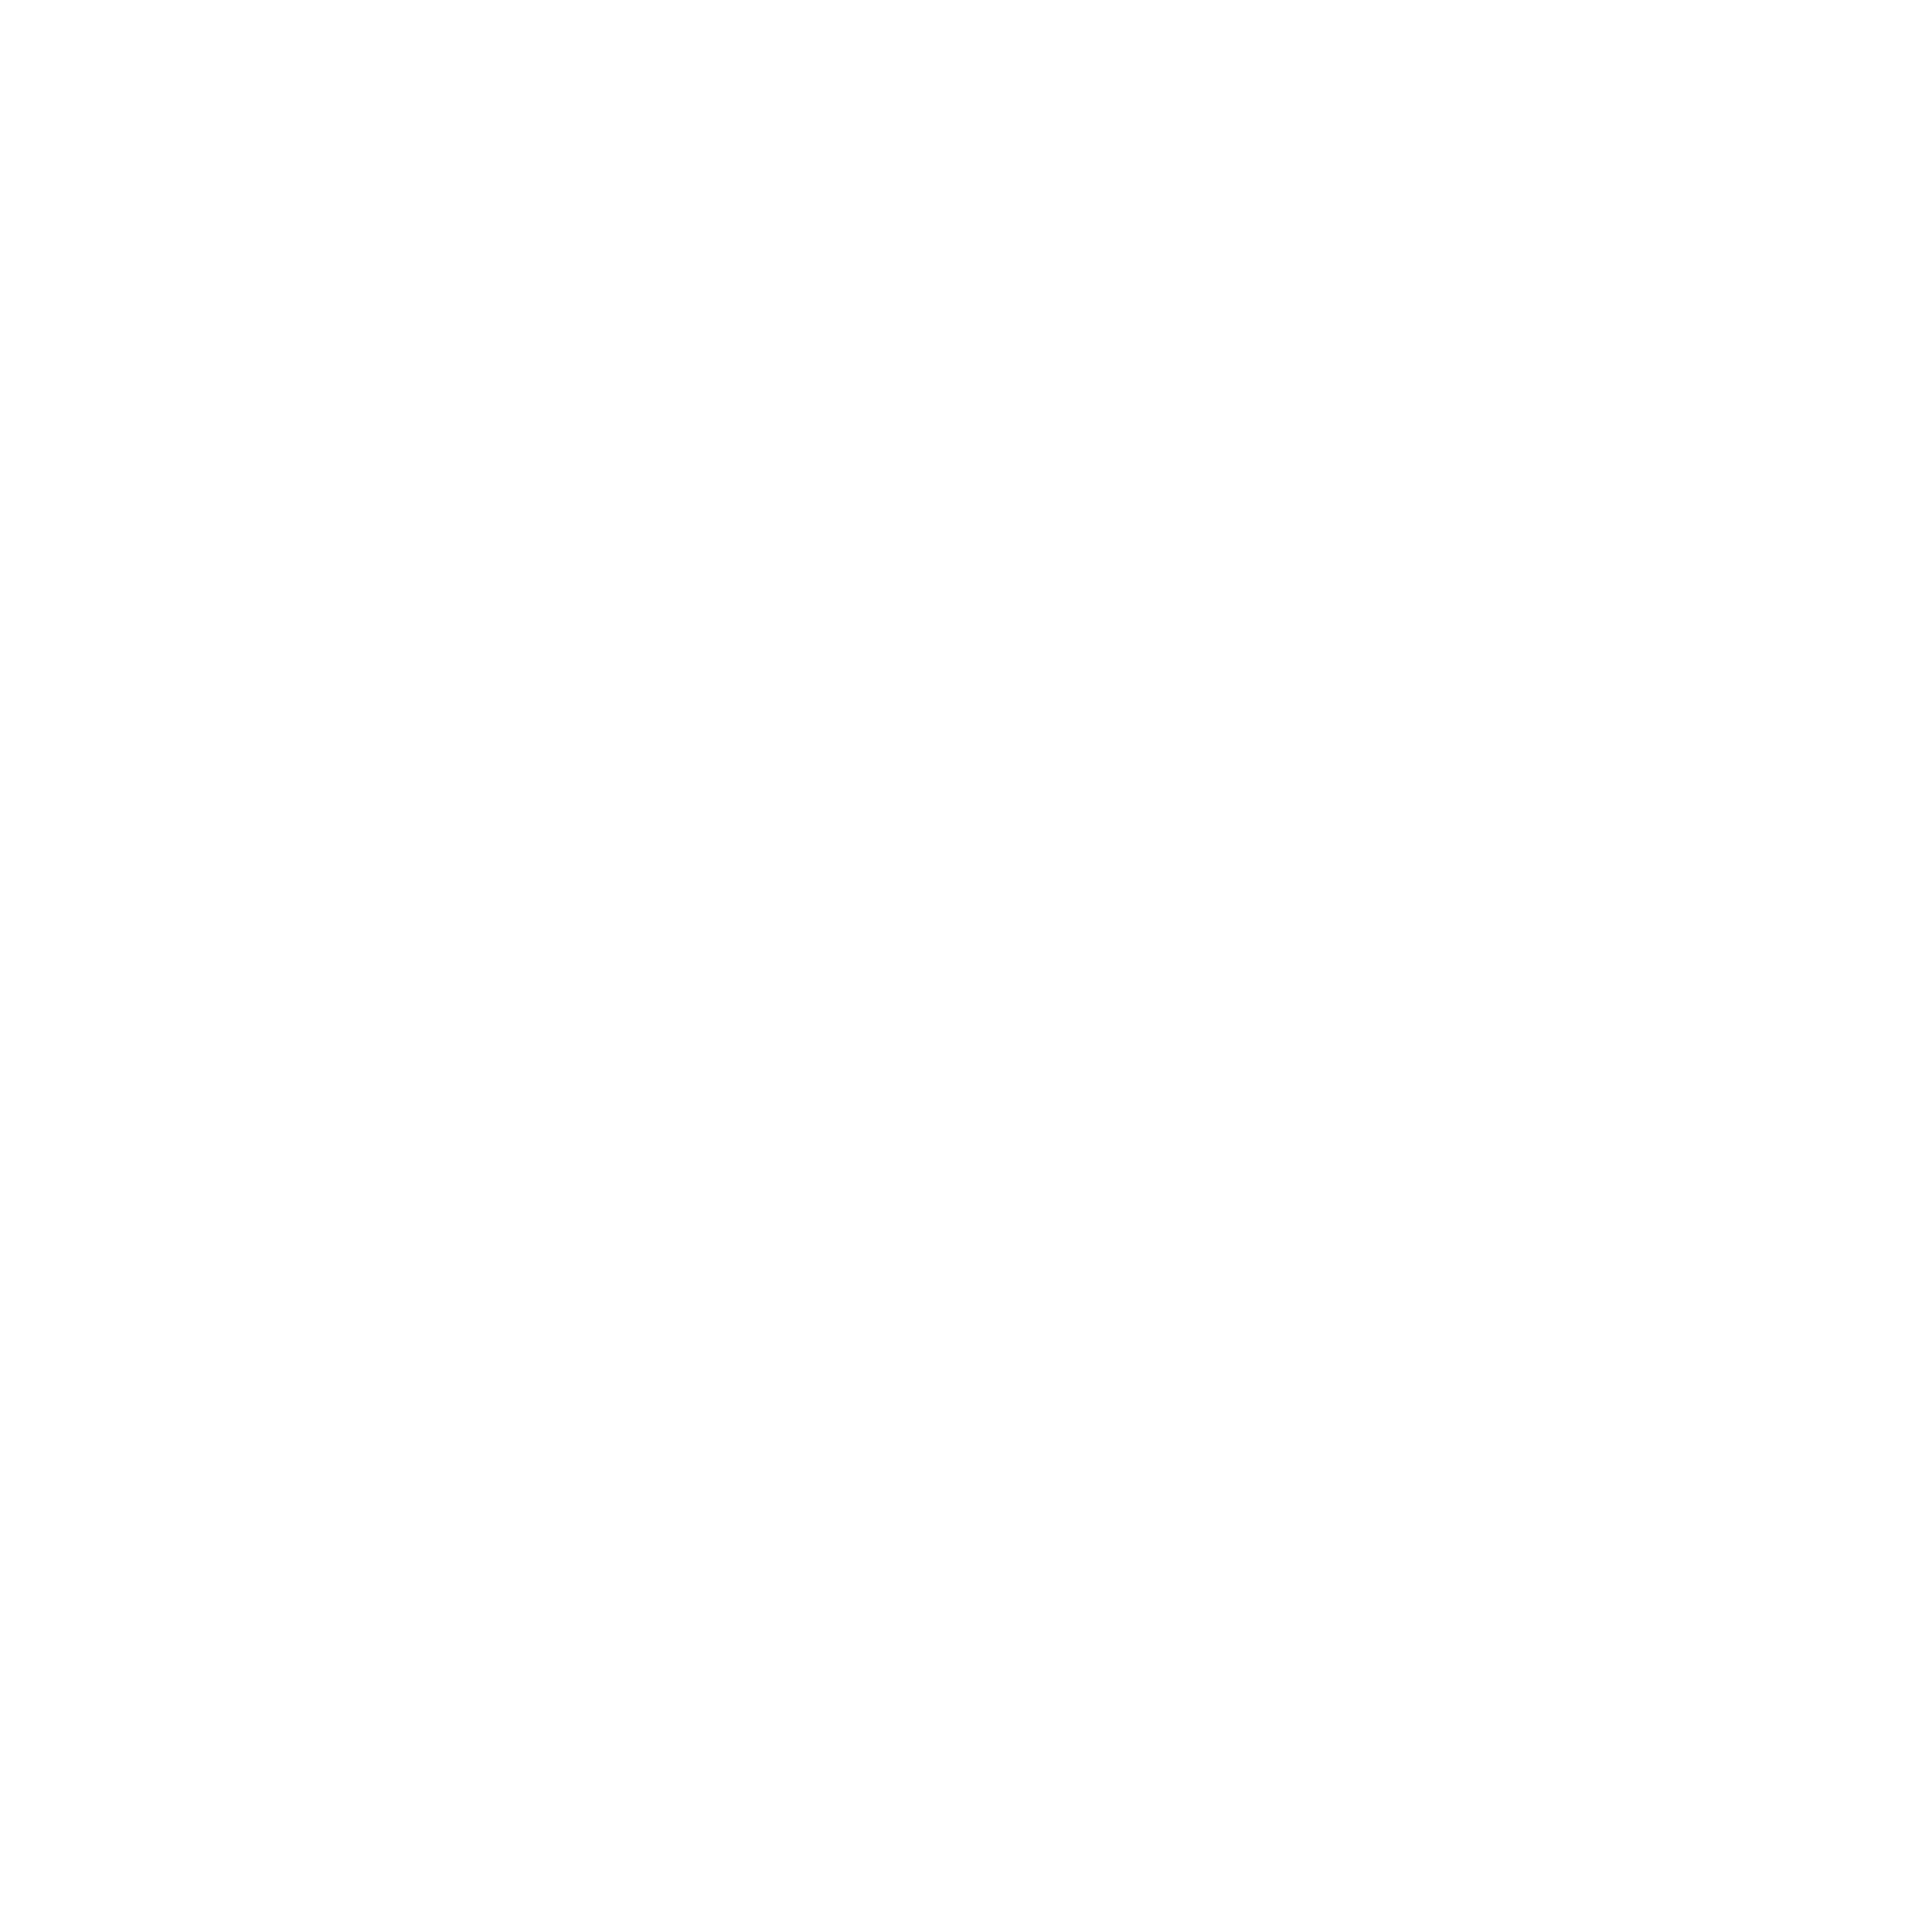 Blue Ribbon Pines